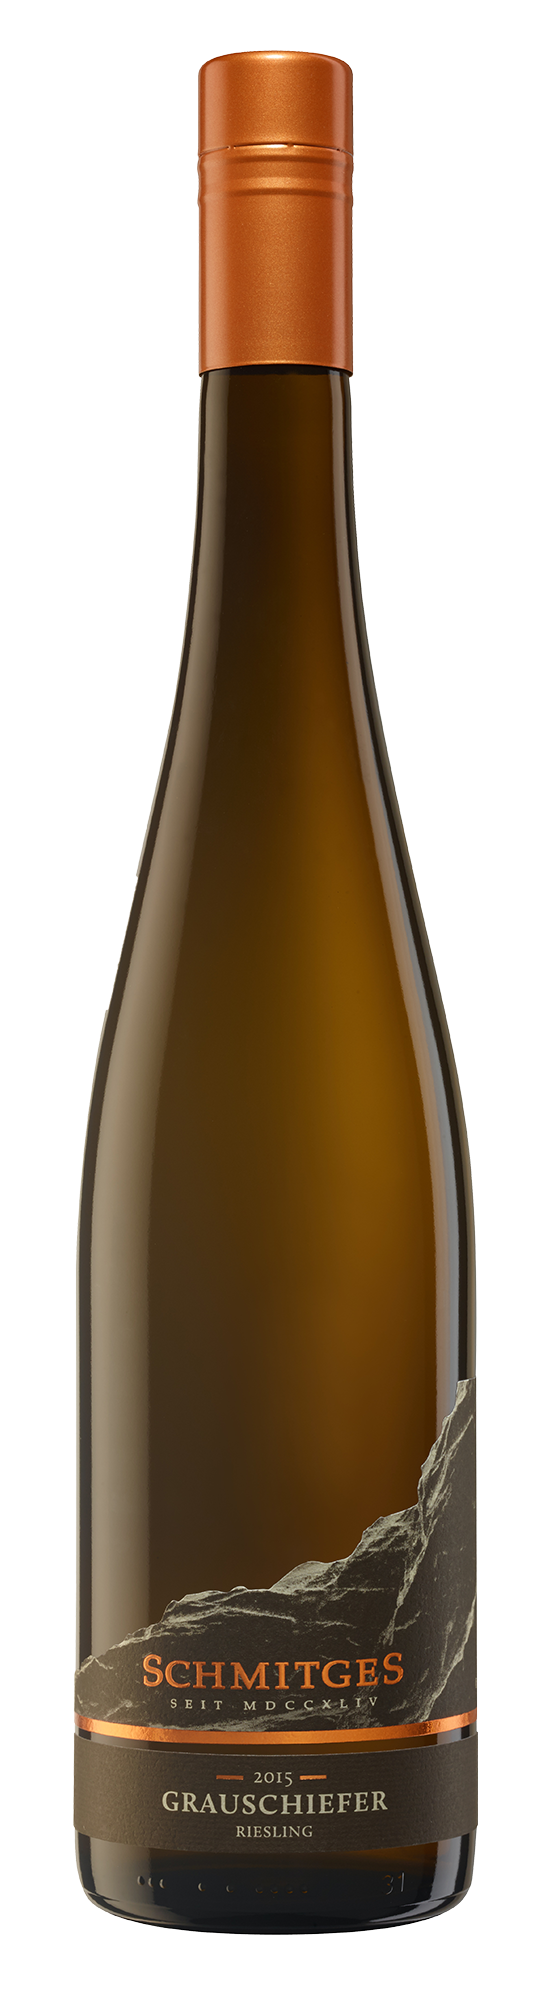 Riesling Grauschiefer QbA